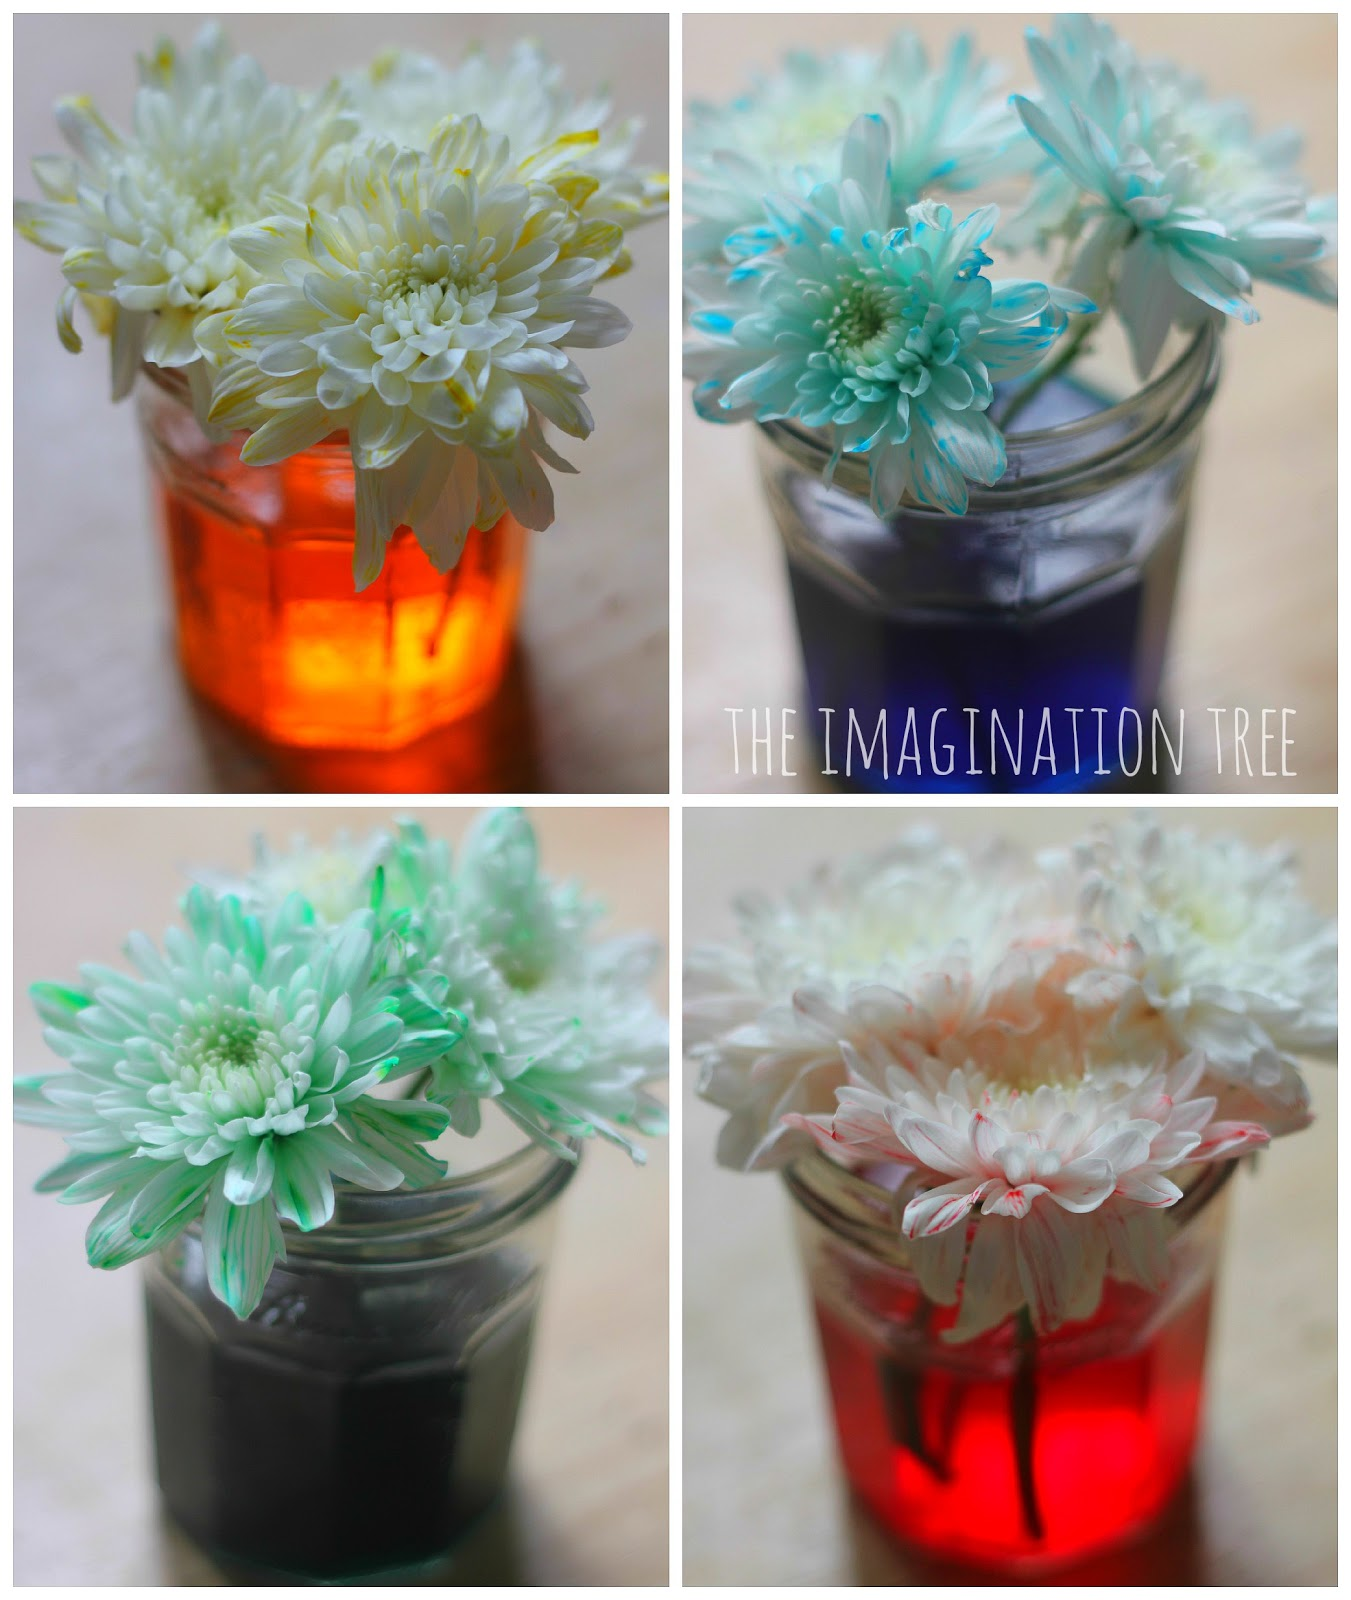 dyed flowers science experiment the imagination tree